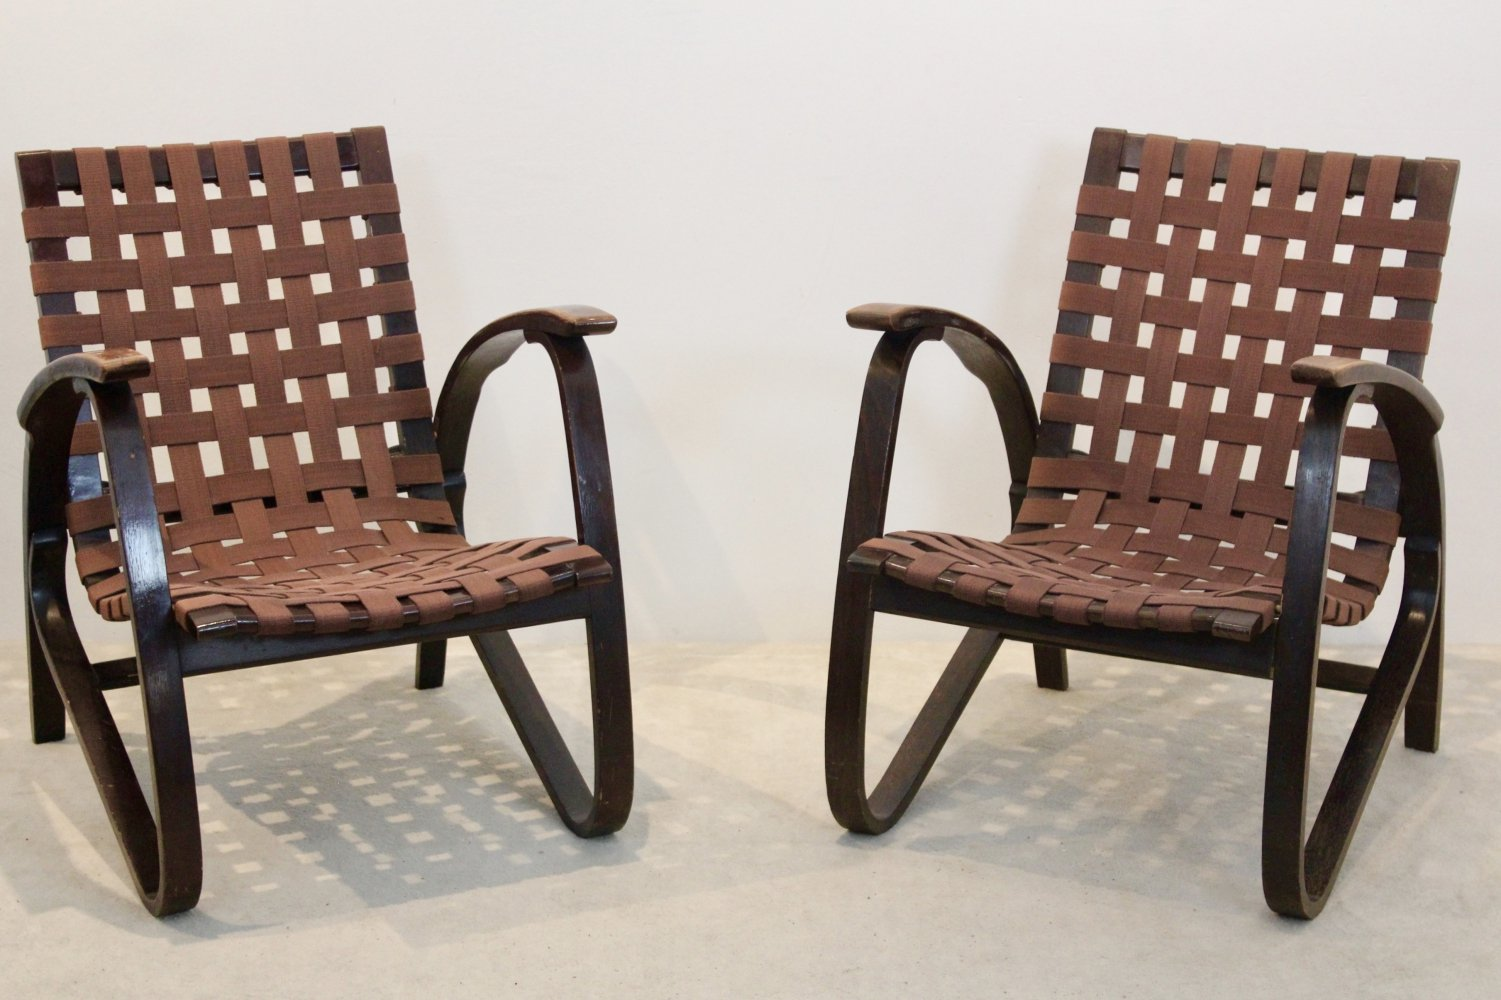 Pair of Bentwood Armchairs by Jan Vaněk for UP Závody, Czechoslovakia